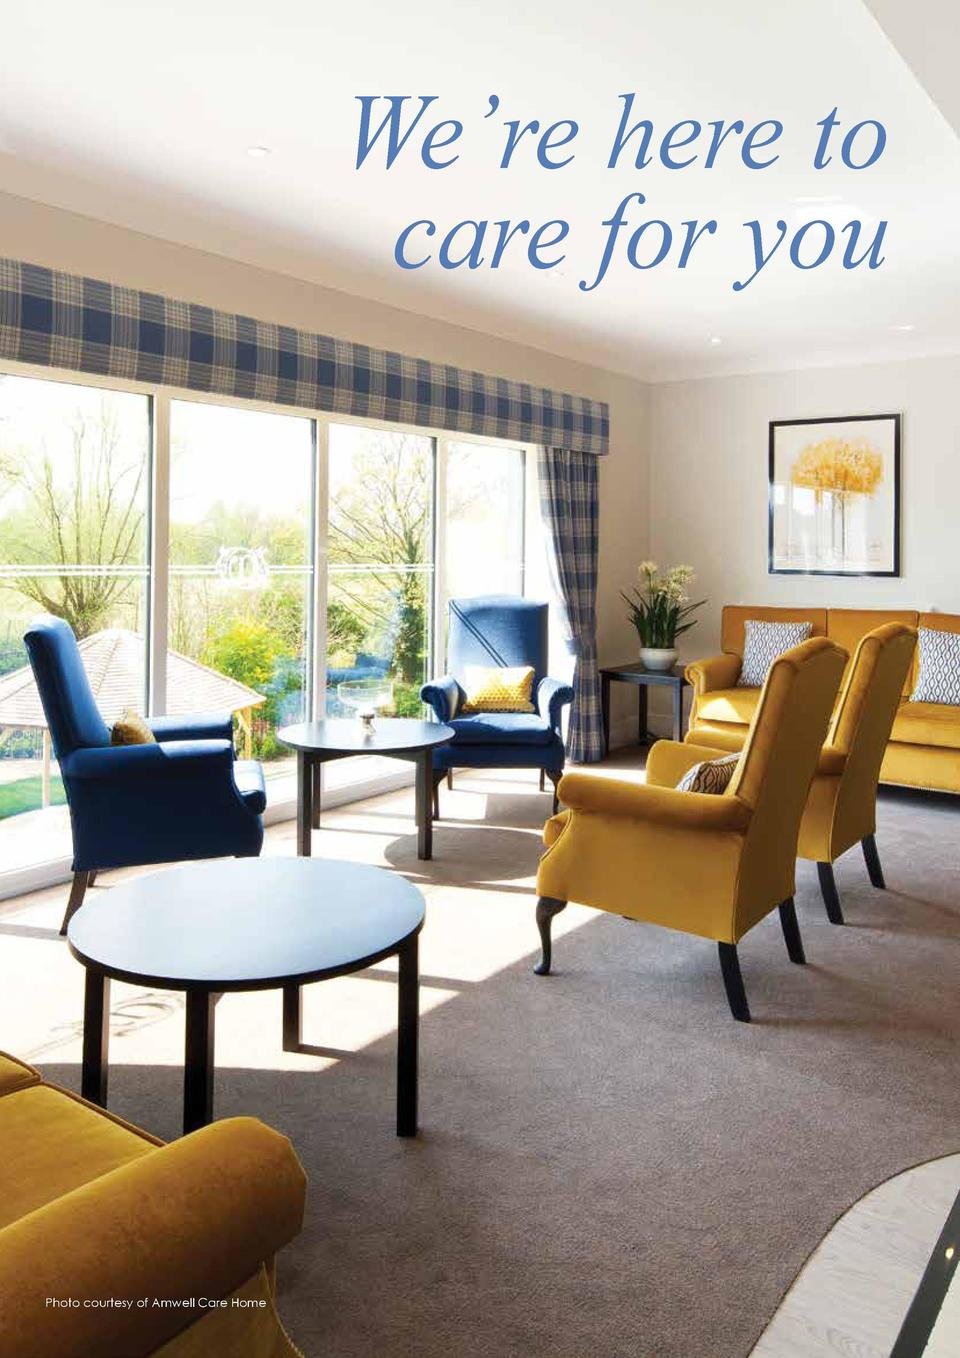 98  CARE  We   re here to care for you  Photo courtesy of Amwell Care Home